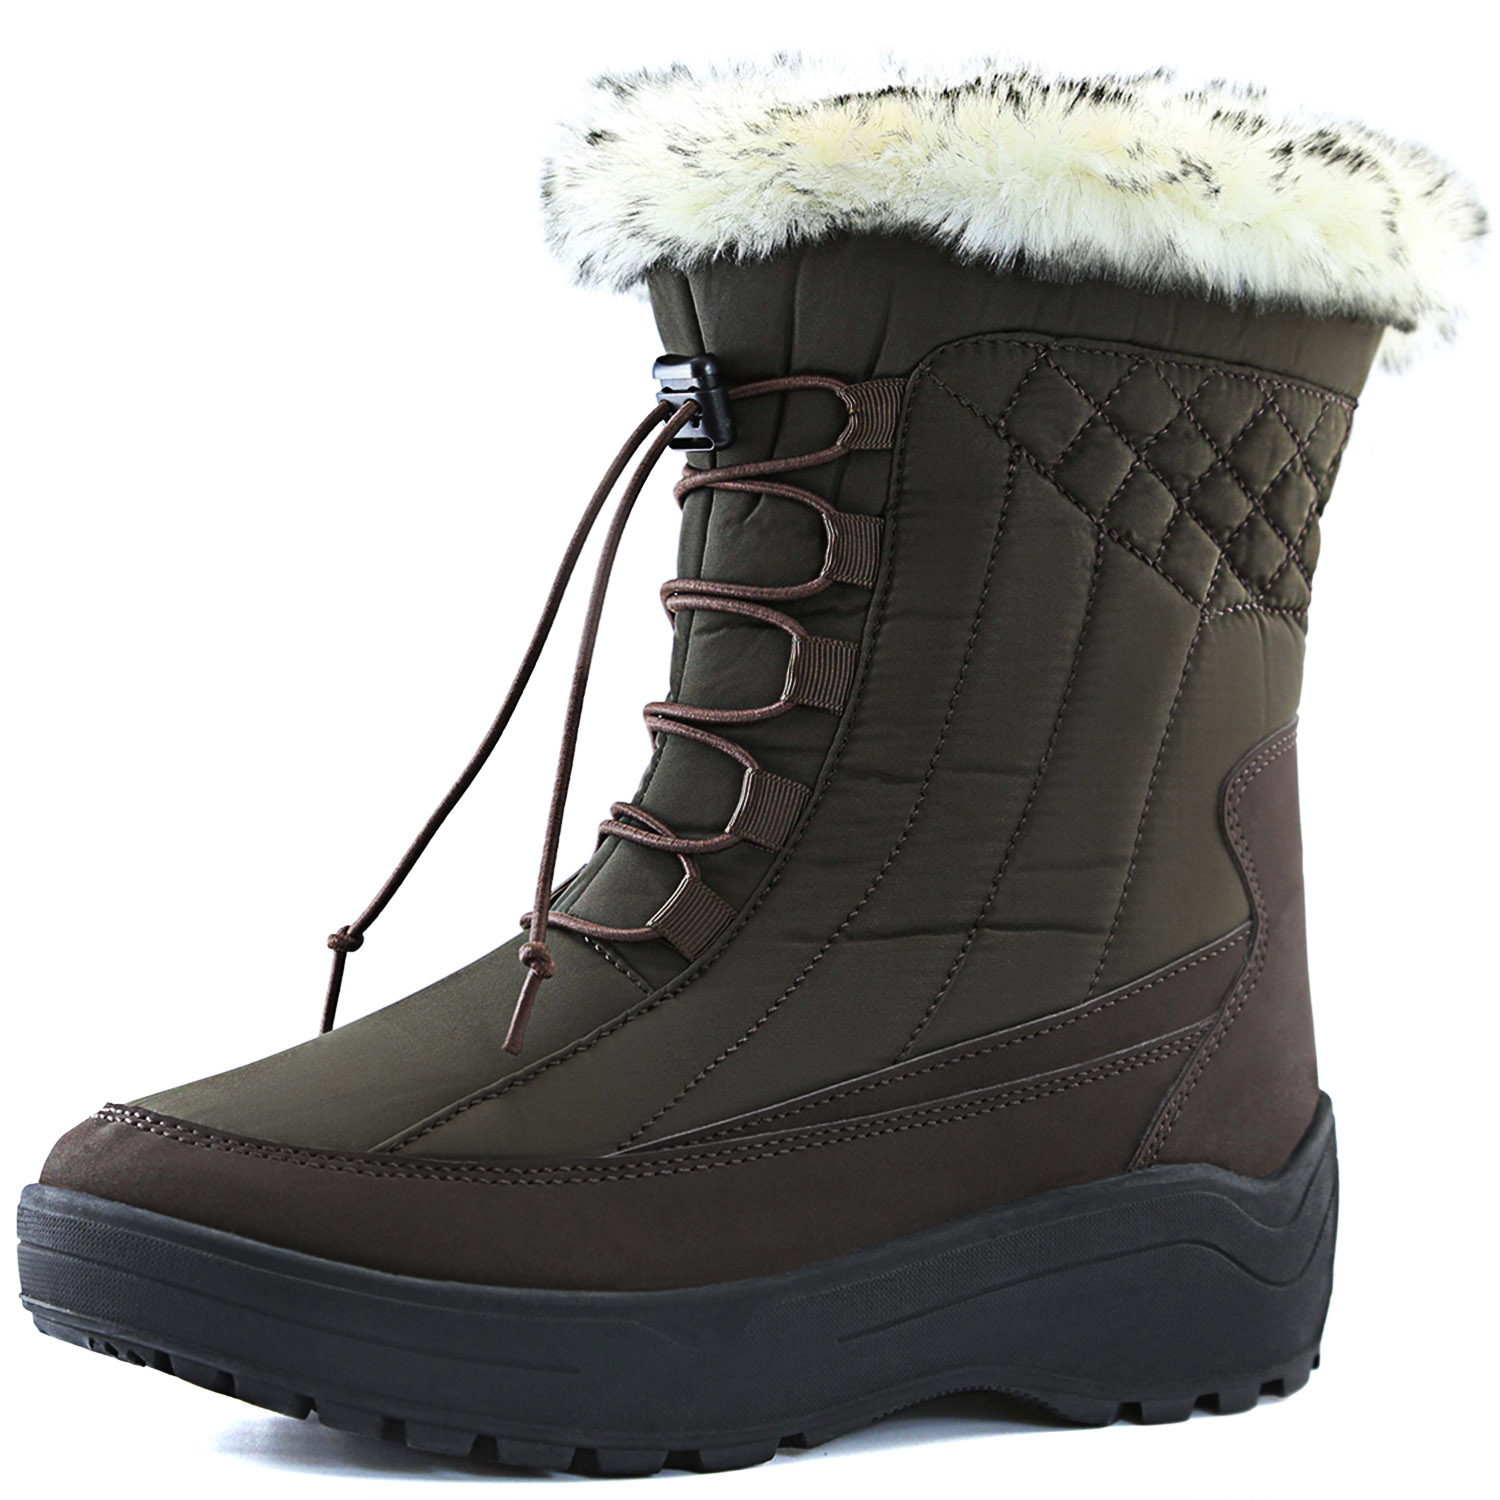 DailyShoes Woman's Ankle High locked Lace Up Warm Fur Water Resistant Eskimo Snow Boots by